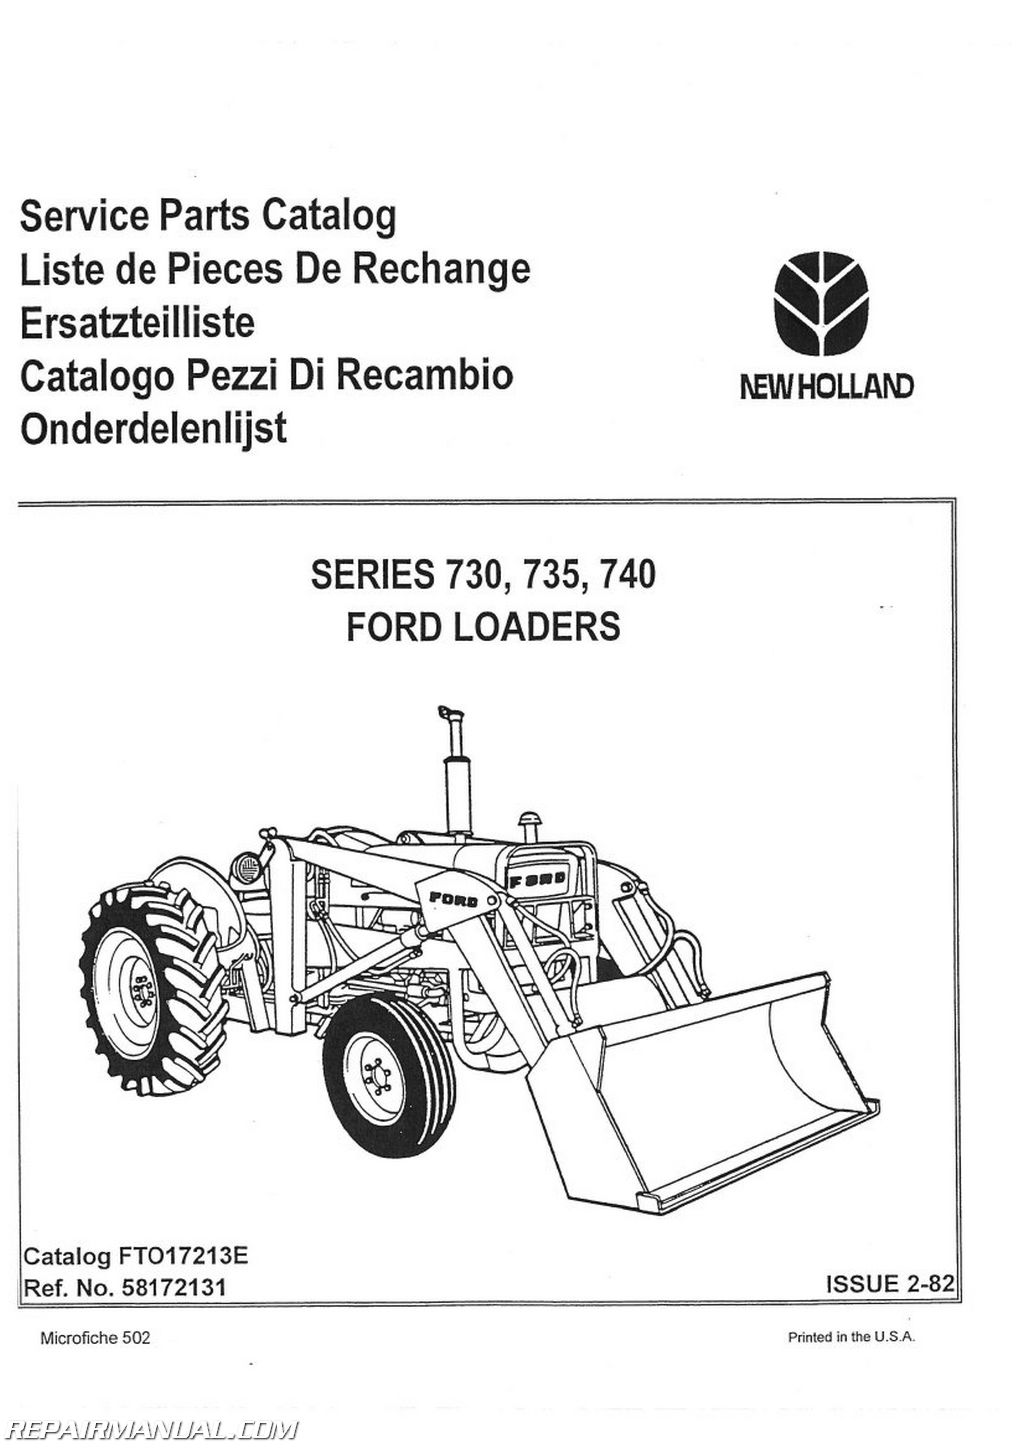 Ford 3550 4500 Ind 3 Cyl Loader Only 730 735 740 Parts Manual Diagrams